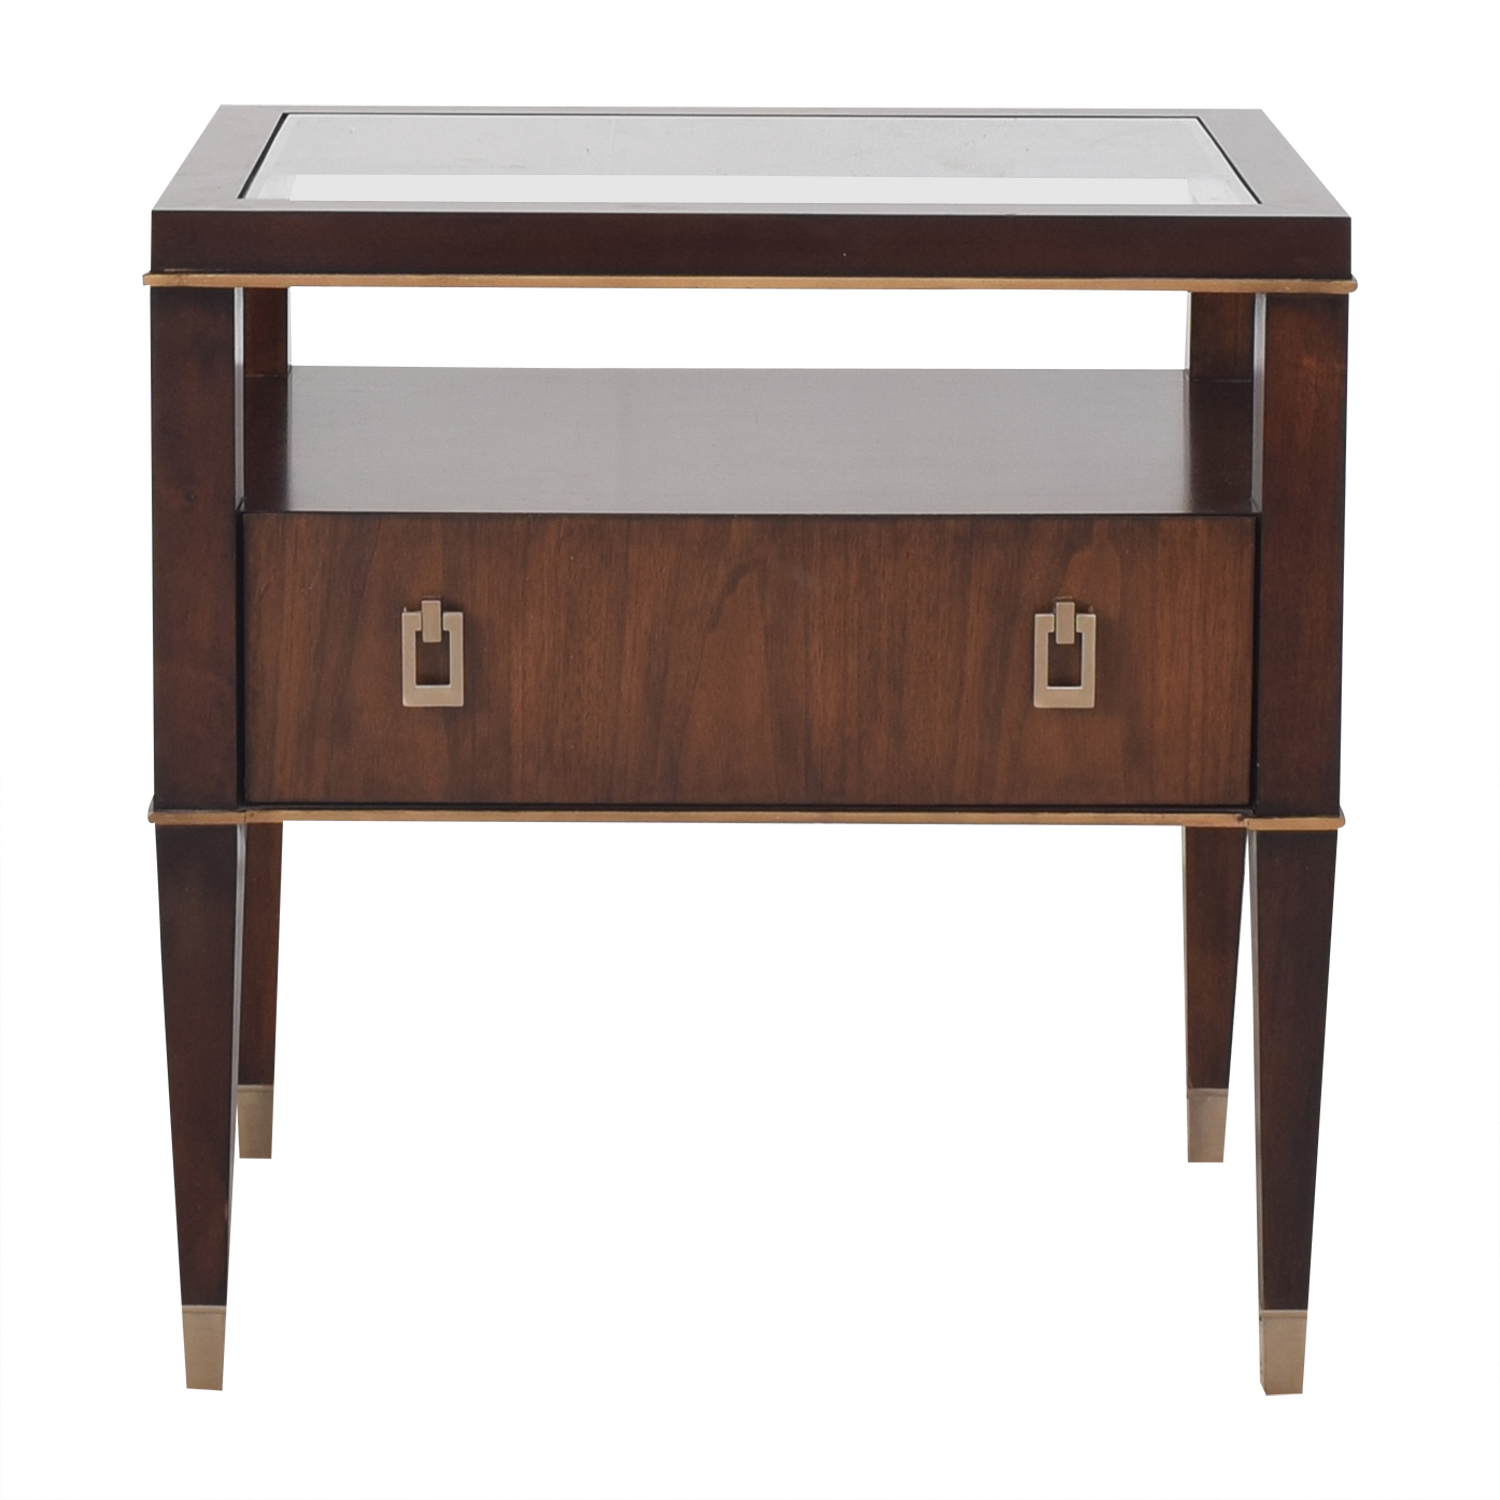 Lexington Furniture Lexington Furniture Tower Place Copley Nightstand on sale